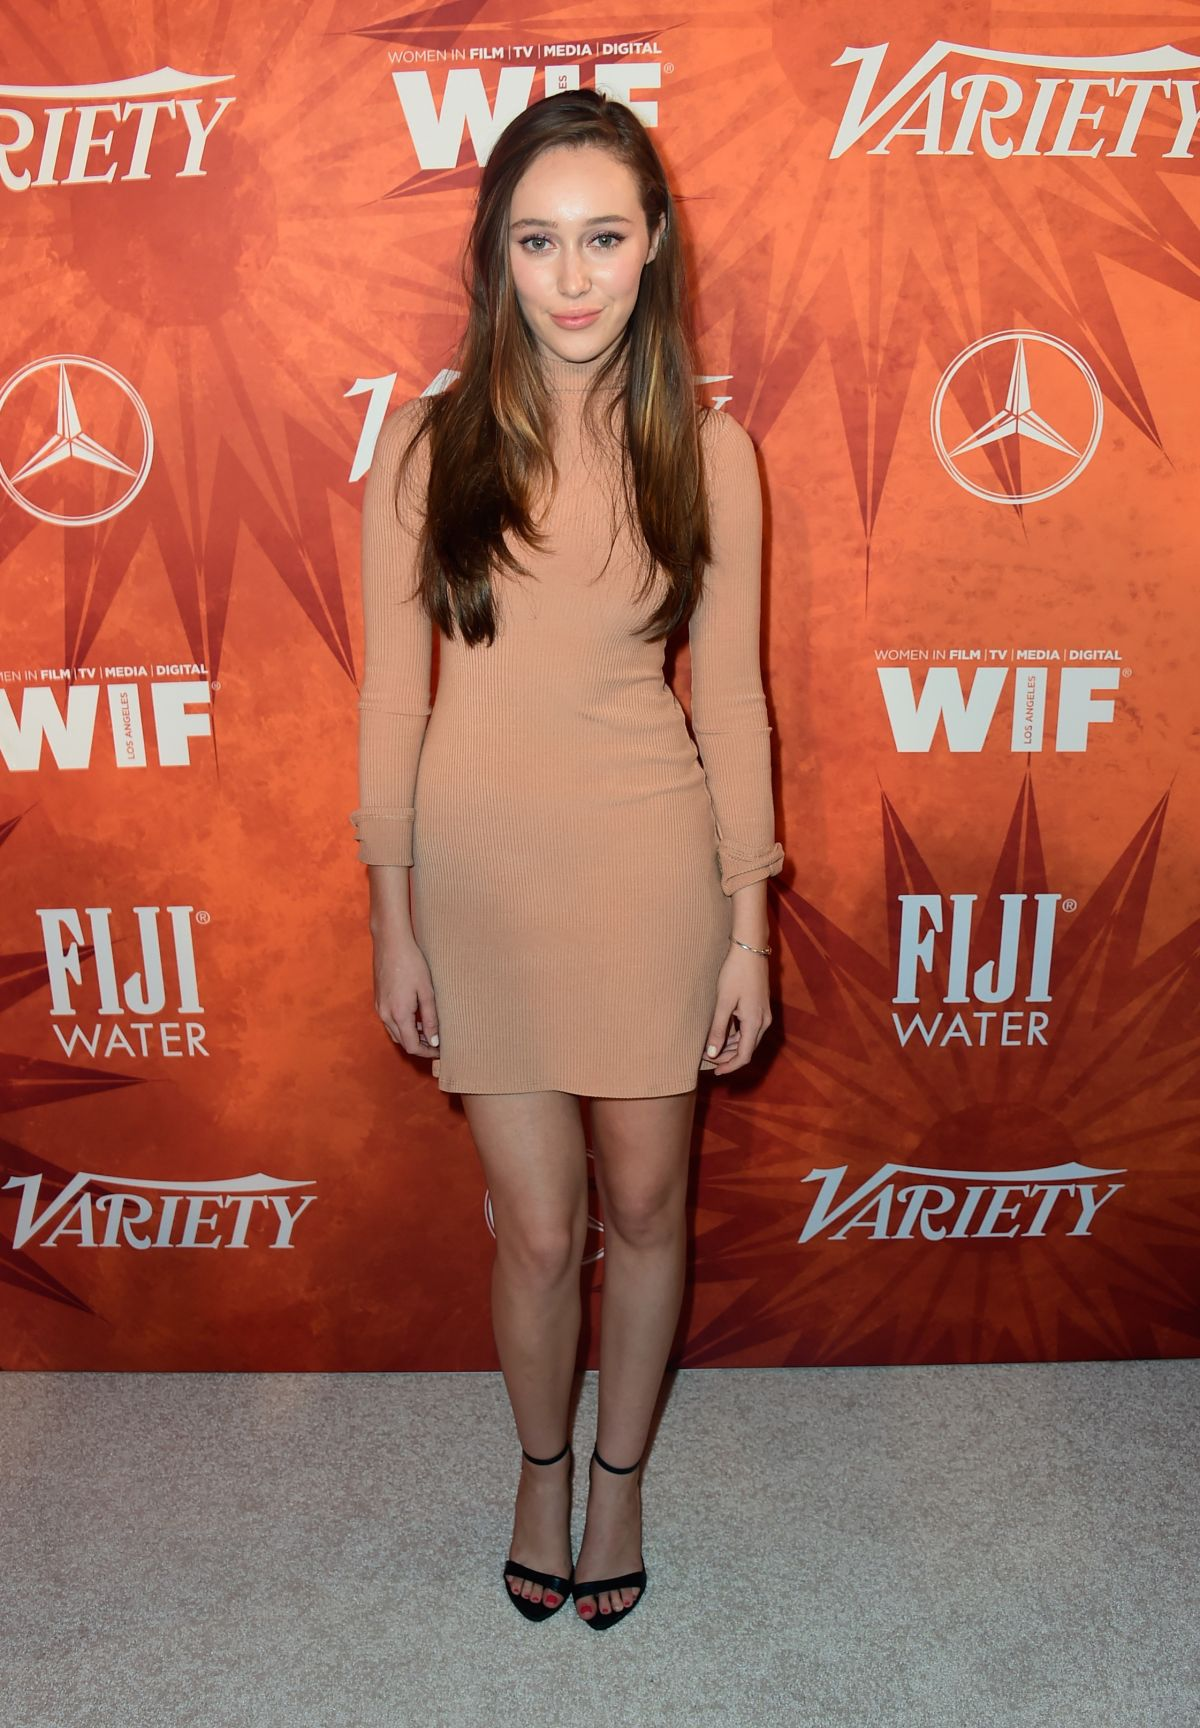 ALYCIA DEBNAM-CAREY at Variety and Women in Film Annual Pre-emmy Celebration in West Hollywood 09/18/20